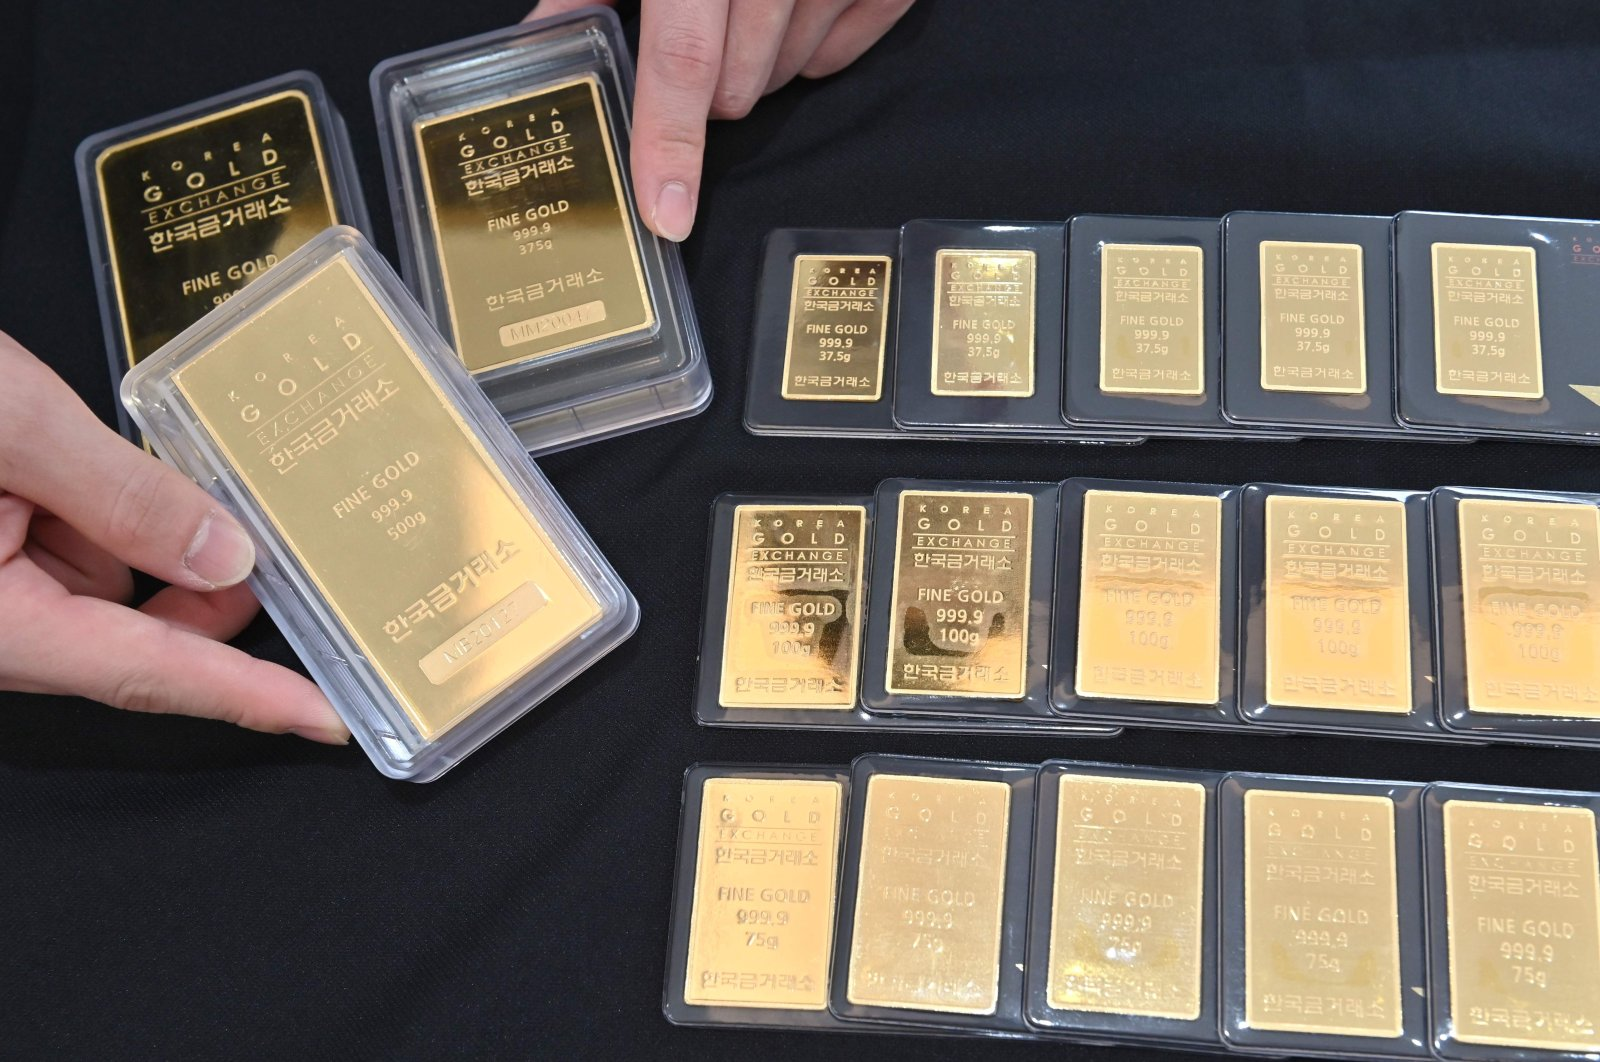 An employee displays gold bars at a Korea Gold Exchange shop in Seoul, South Korea on July 30, 2020. (AFP Photo)